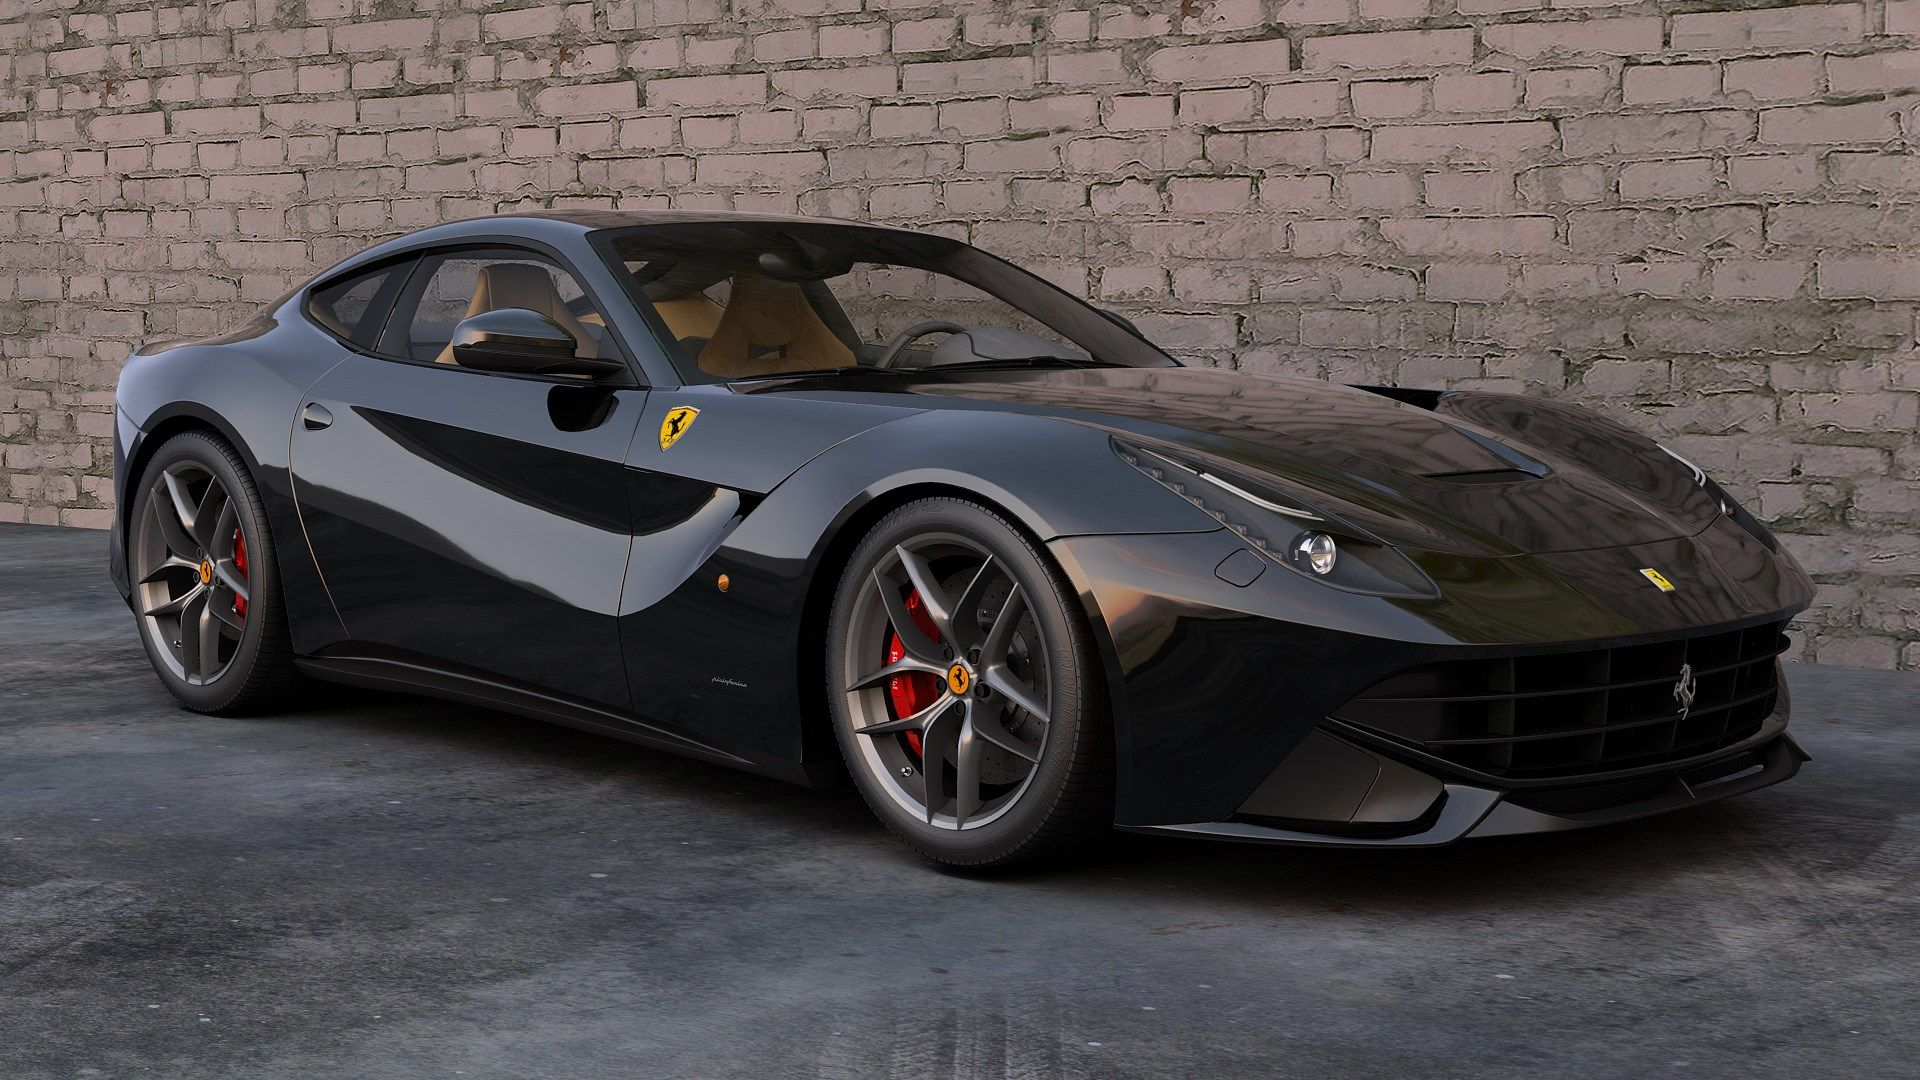 The Ferrari F12 Berlinetta With Images Ferrari F12 Ferrari